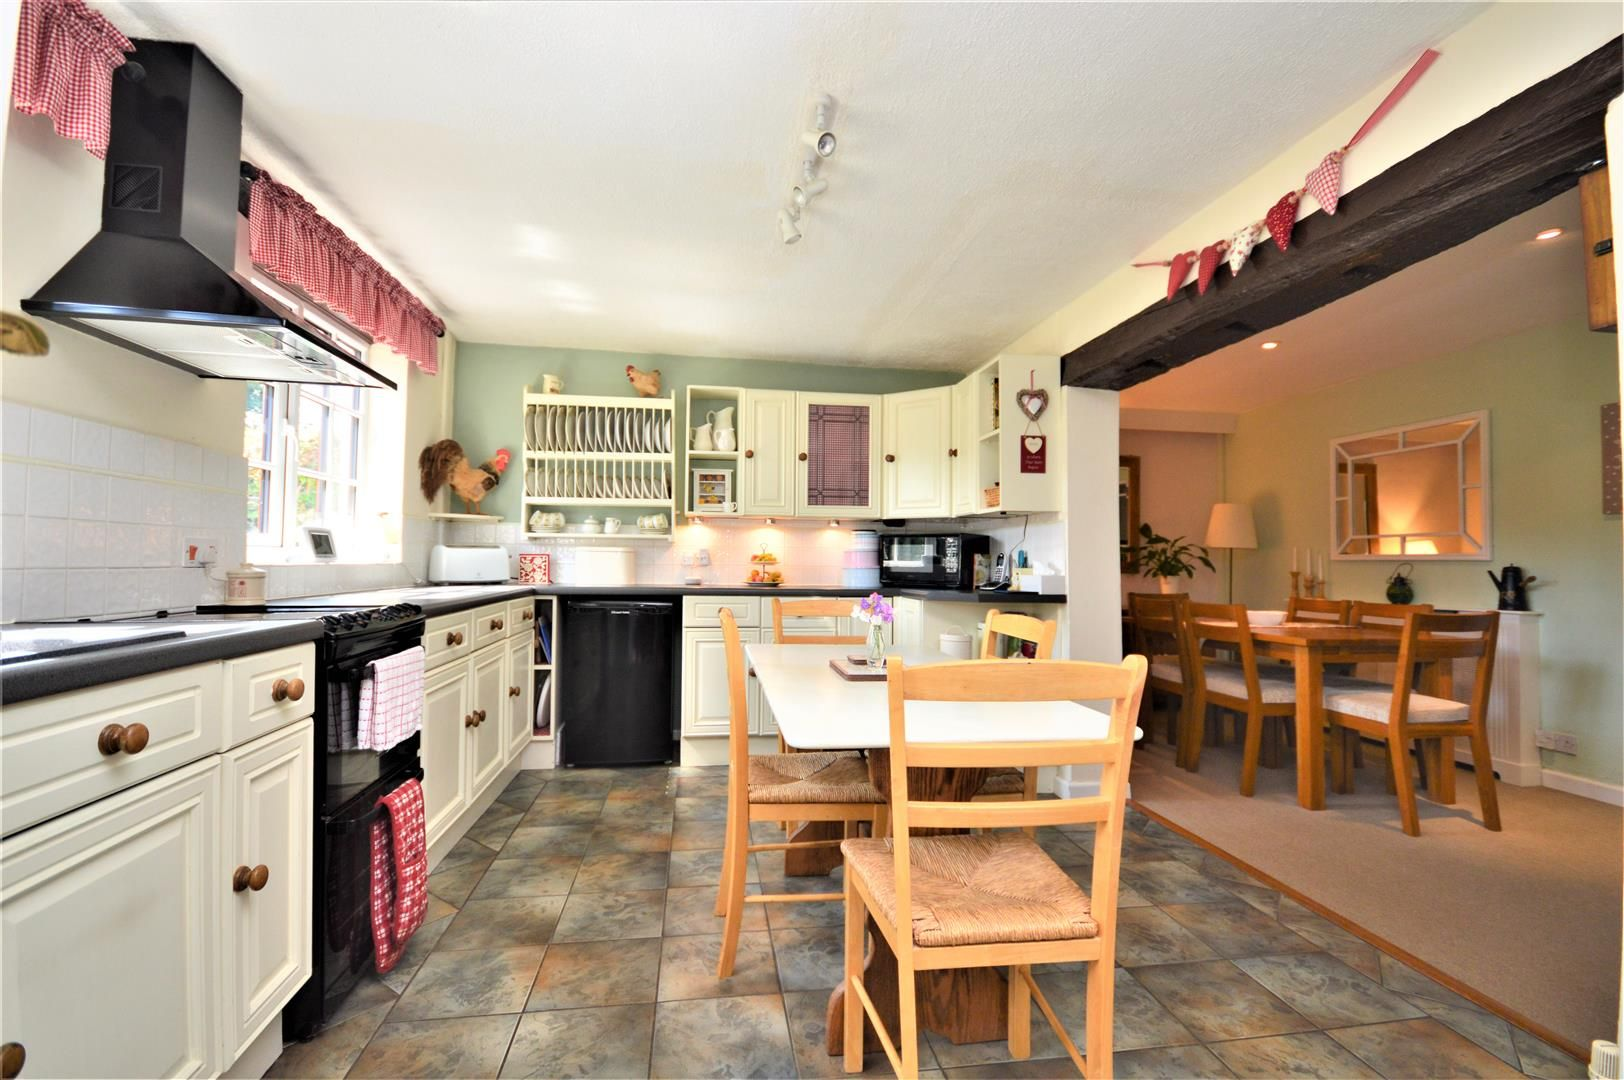 3 bed semi-detached for sale in Madley 5